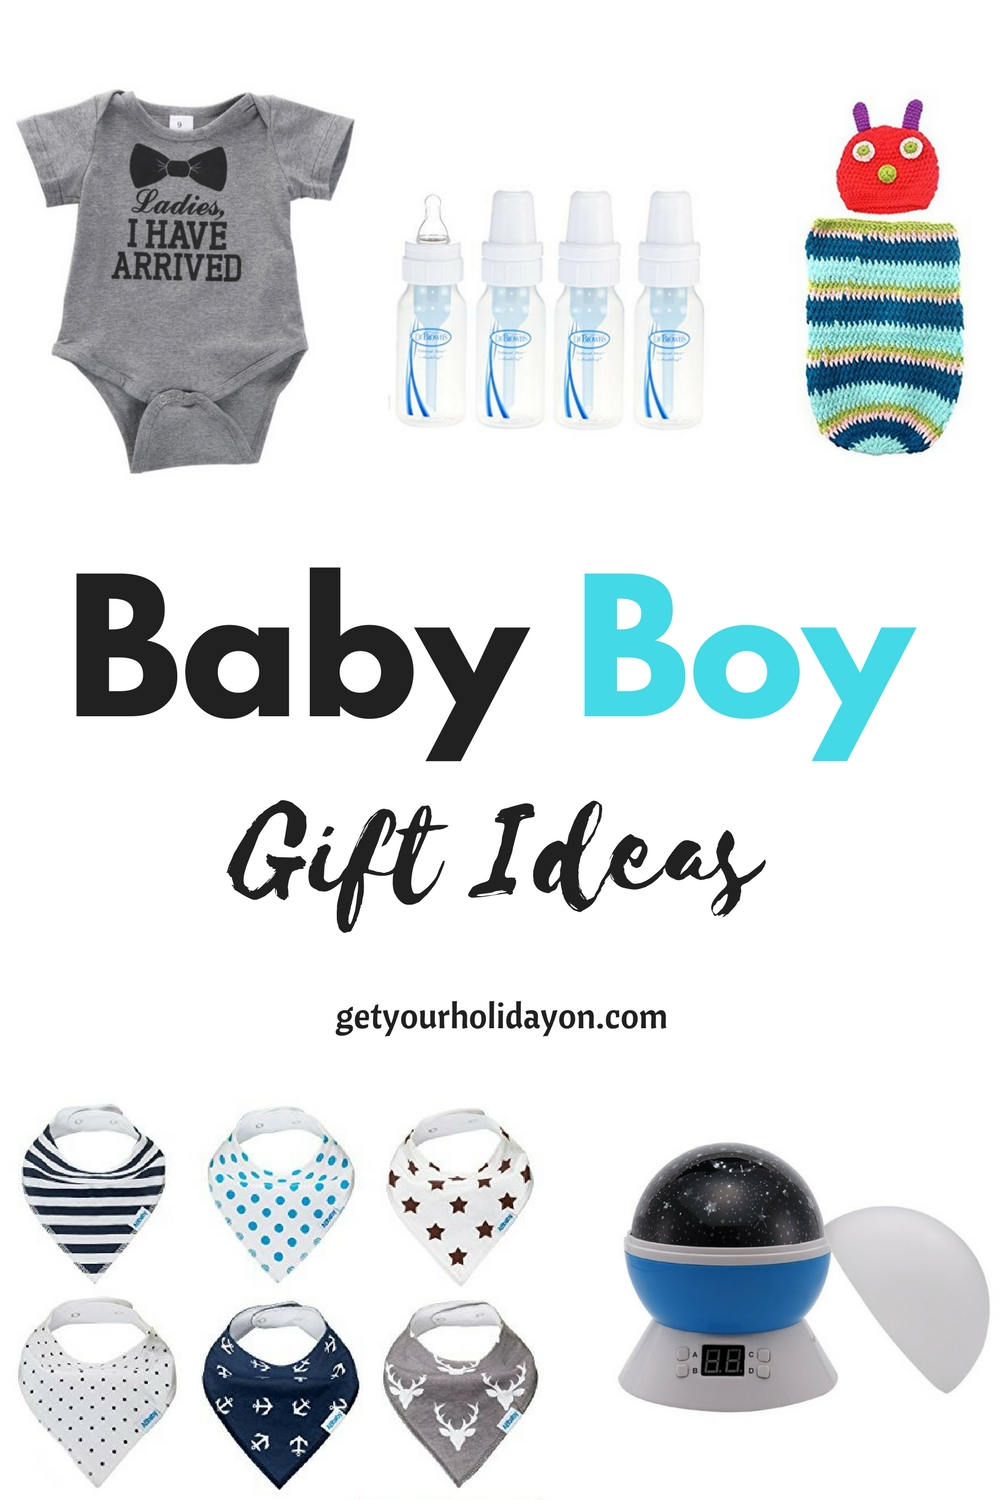 Baby Boy Gift Ideas • Page 2 of 11 • Get Your Holiday On!